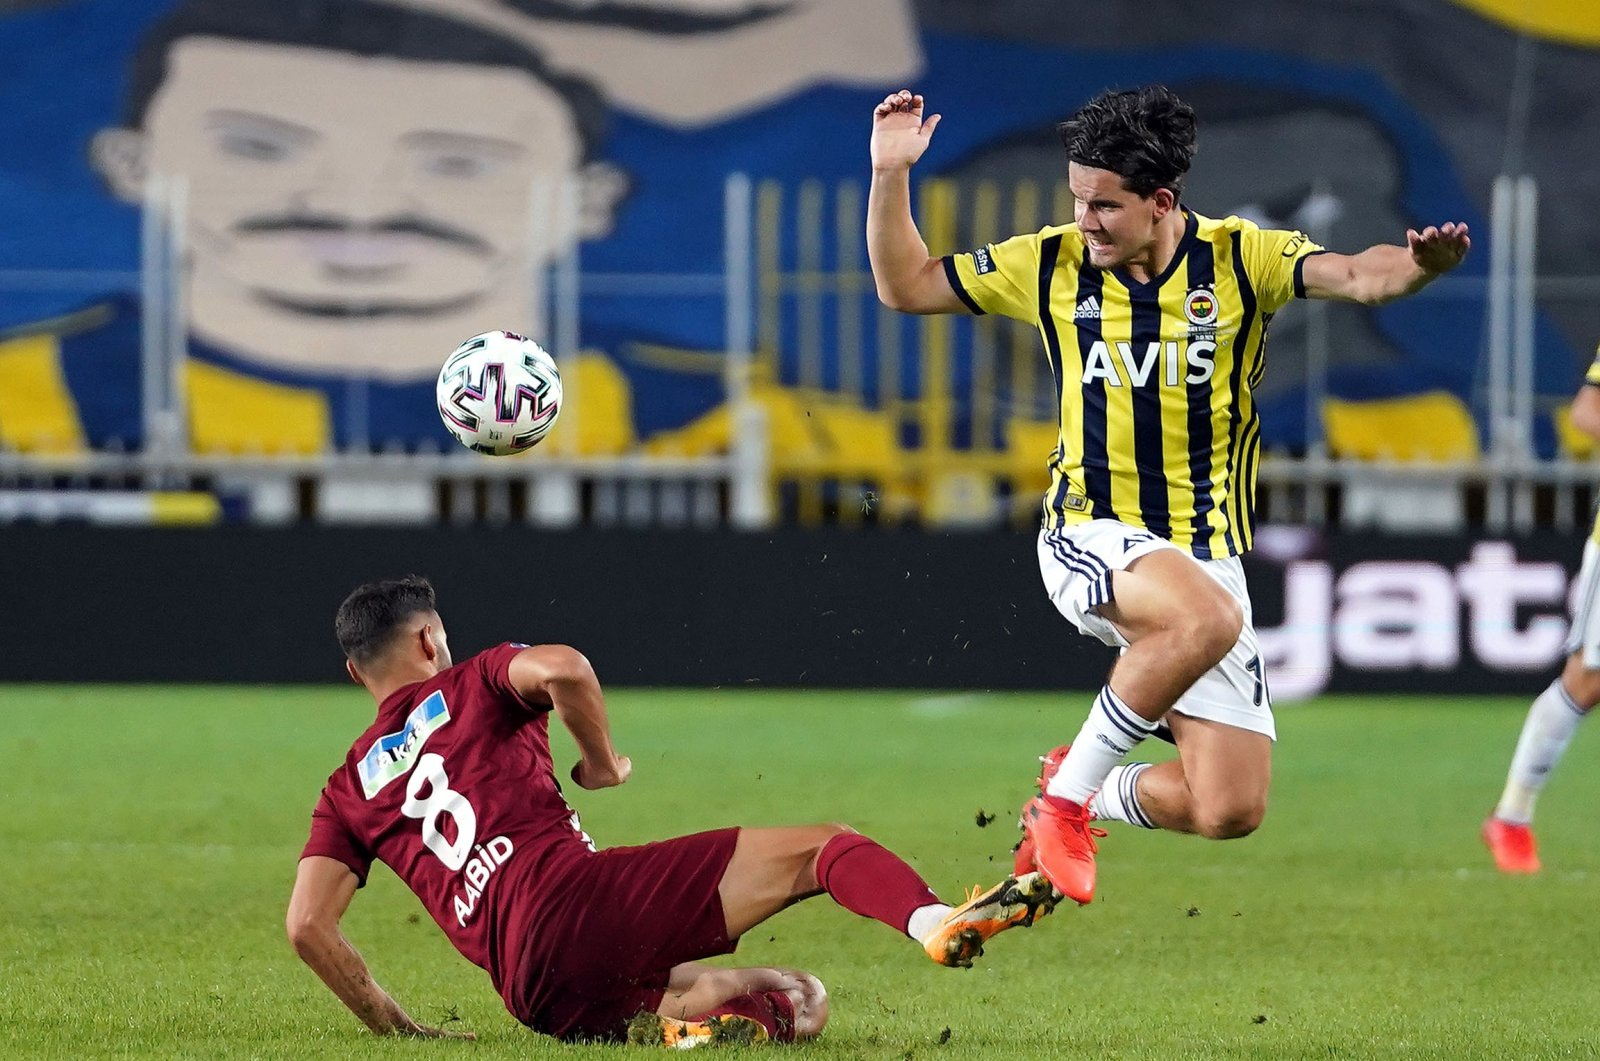 Fenerbahçe's Selim Ilgaz (R) and Hatayspor's Rayane Aabid compete for the ball during a Süper Lig match in Istanbul, Turkey, Sept. 21, 2020. (IHA Photo)